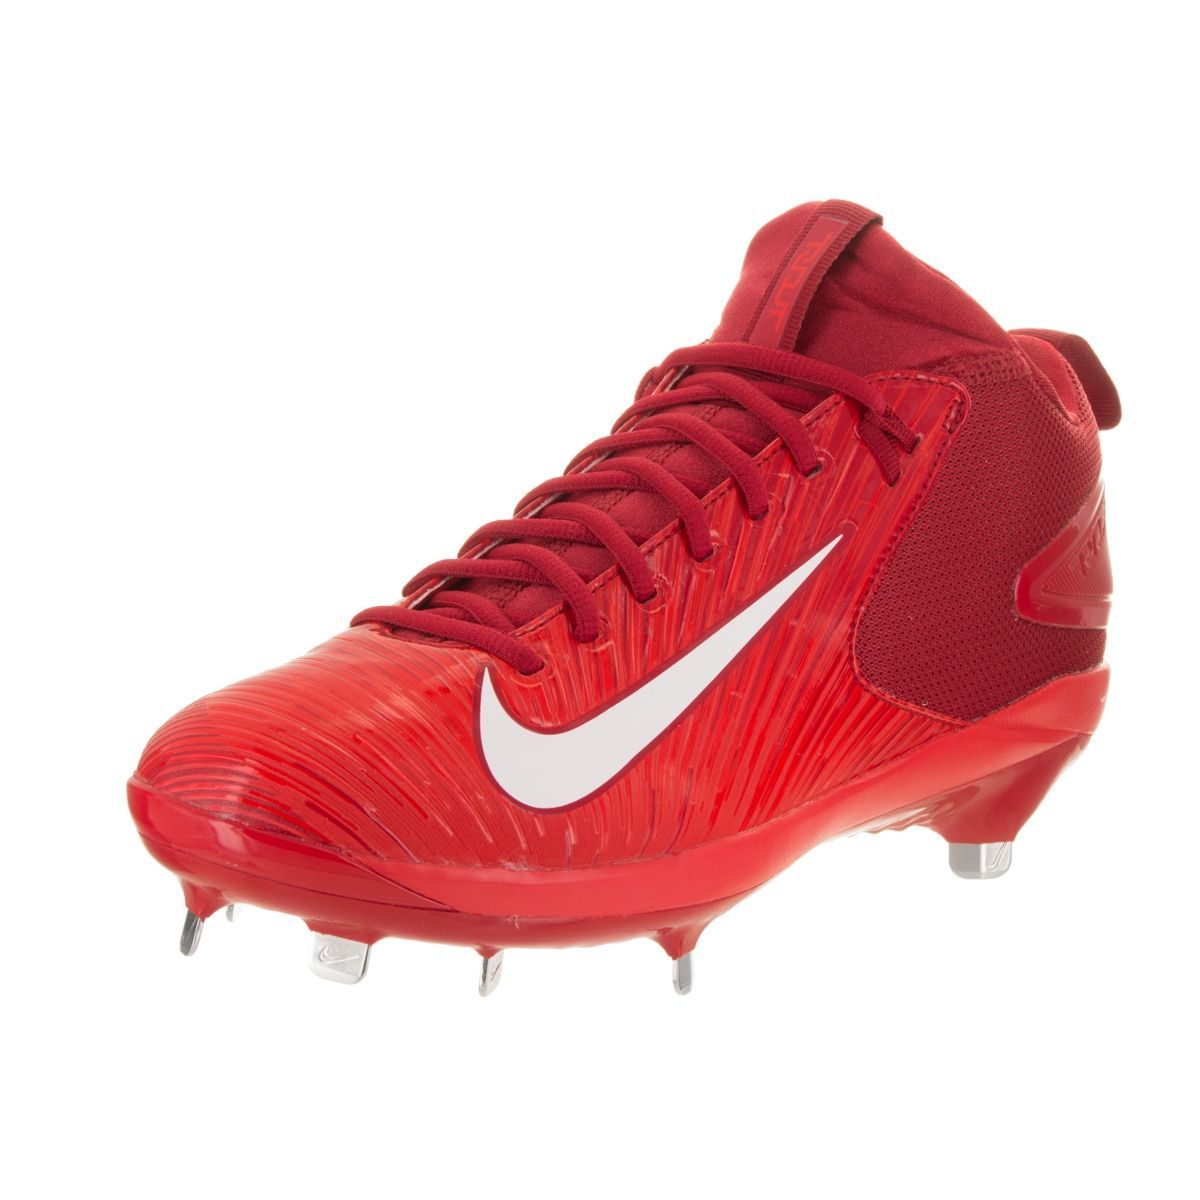 d8170794a Nike Men s Trout 3 Pro Synthetic Baseball Cleats